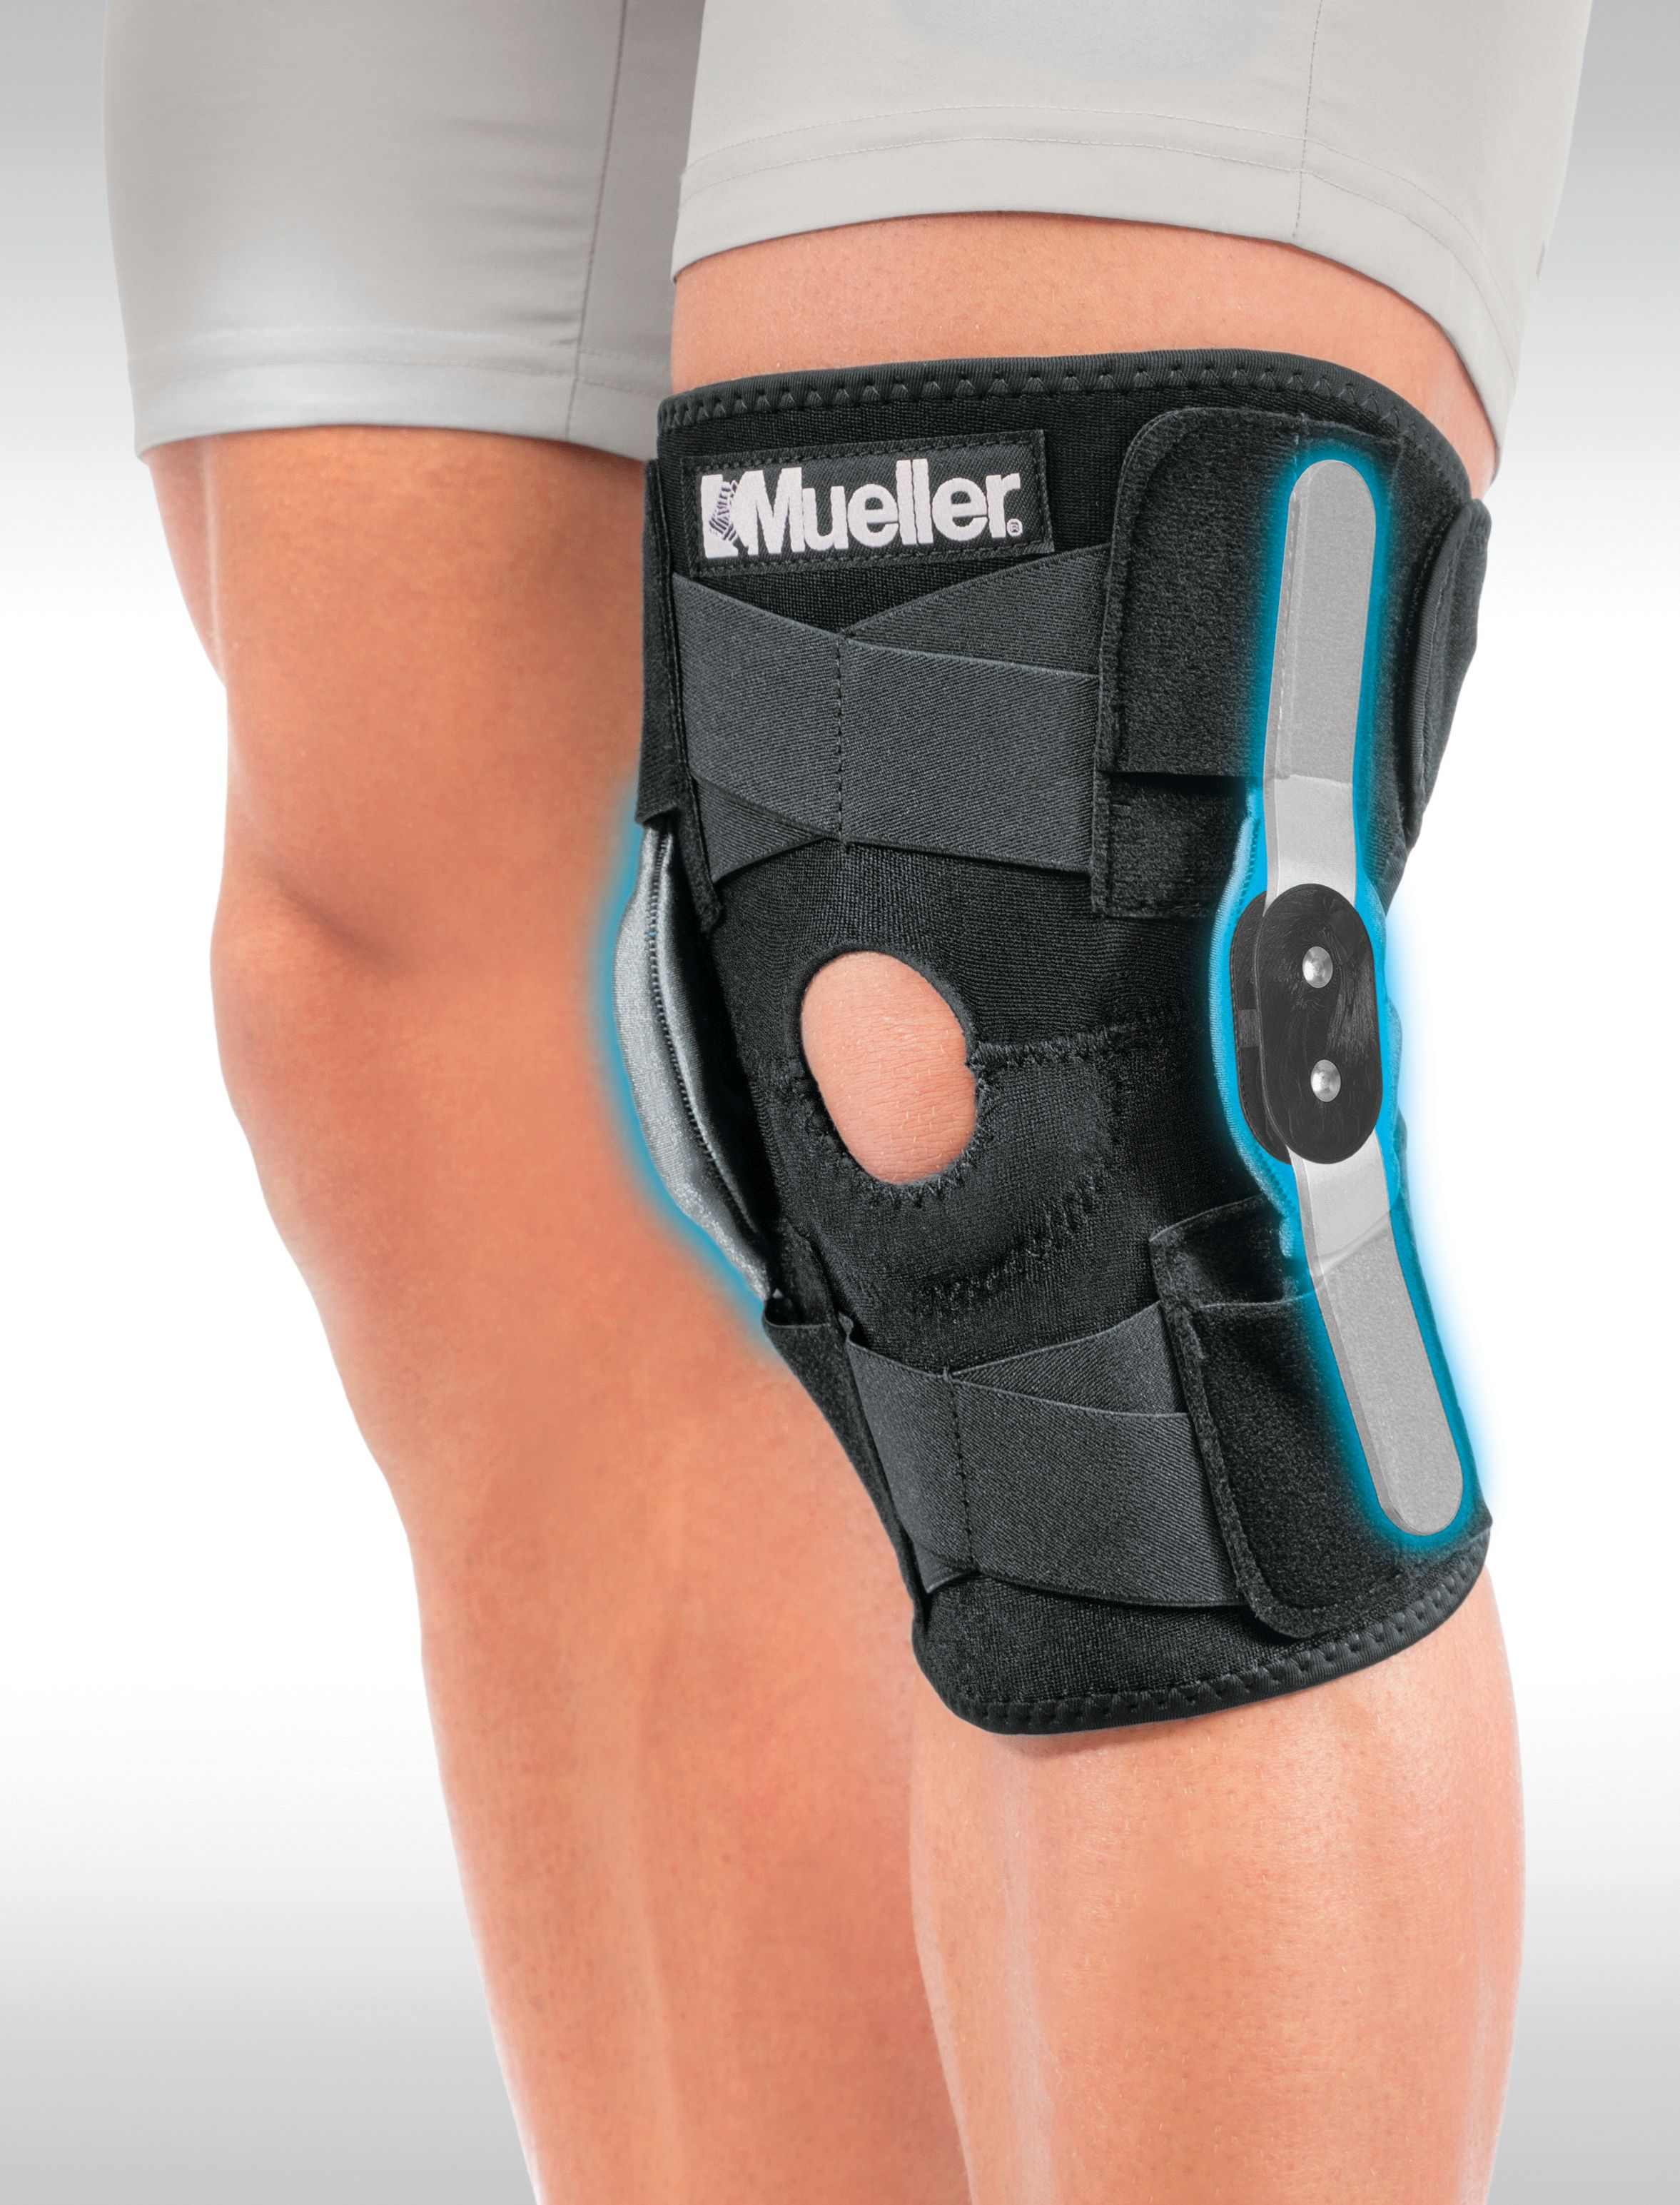 d4cccb1cee Mueller Adjustable Hinged Knee Brace, Black, One Size Fits Most -  Walmart.com